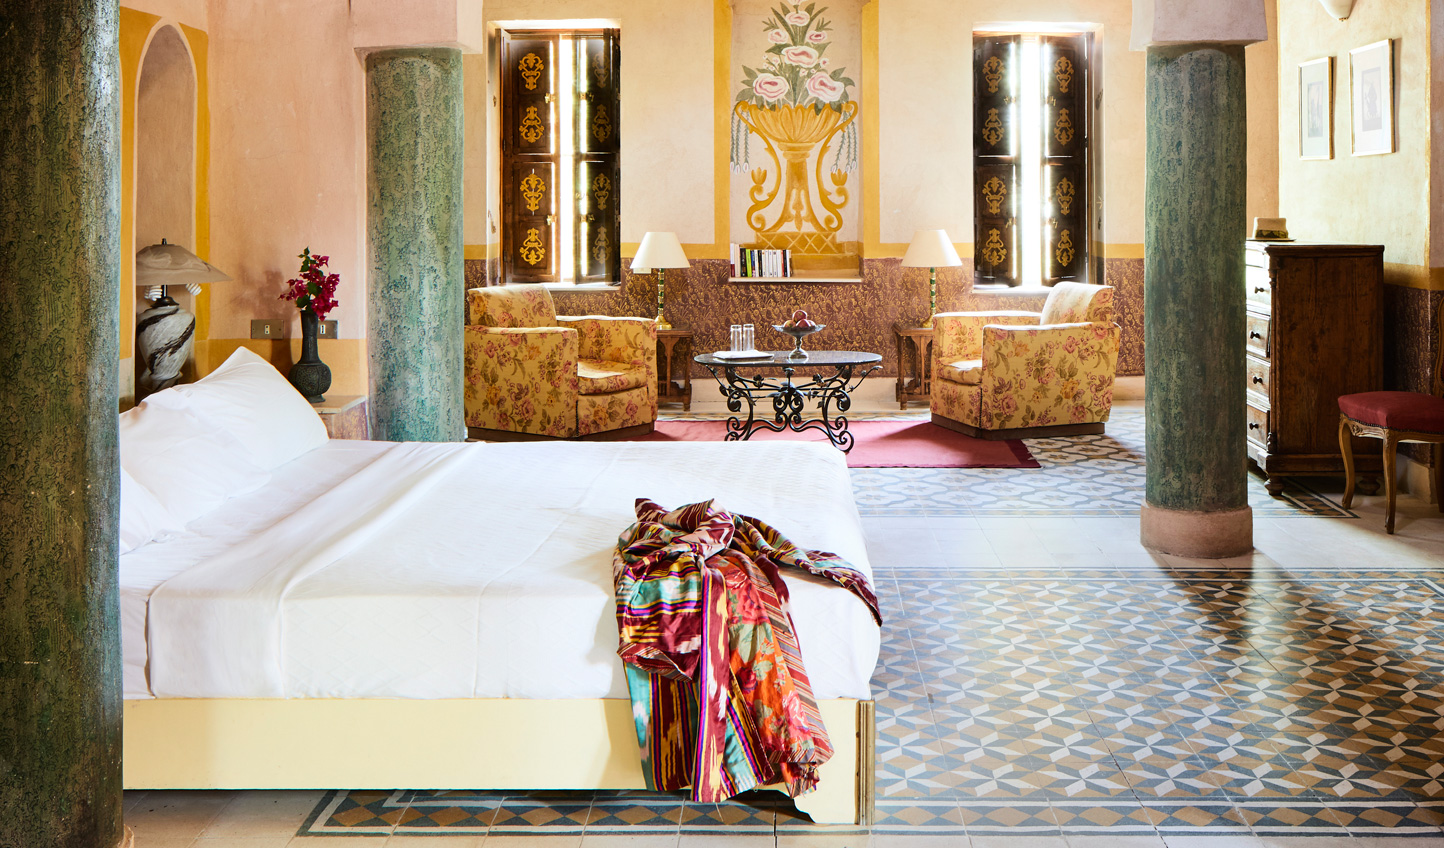 Spacious suites reminiscent of Moroccan riads with beautiful tiling and hidden terraces